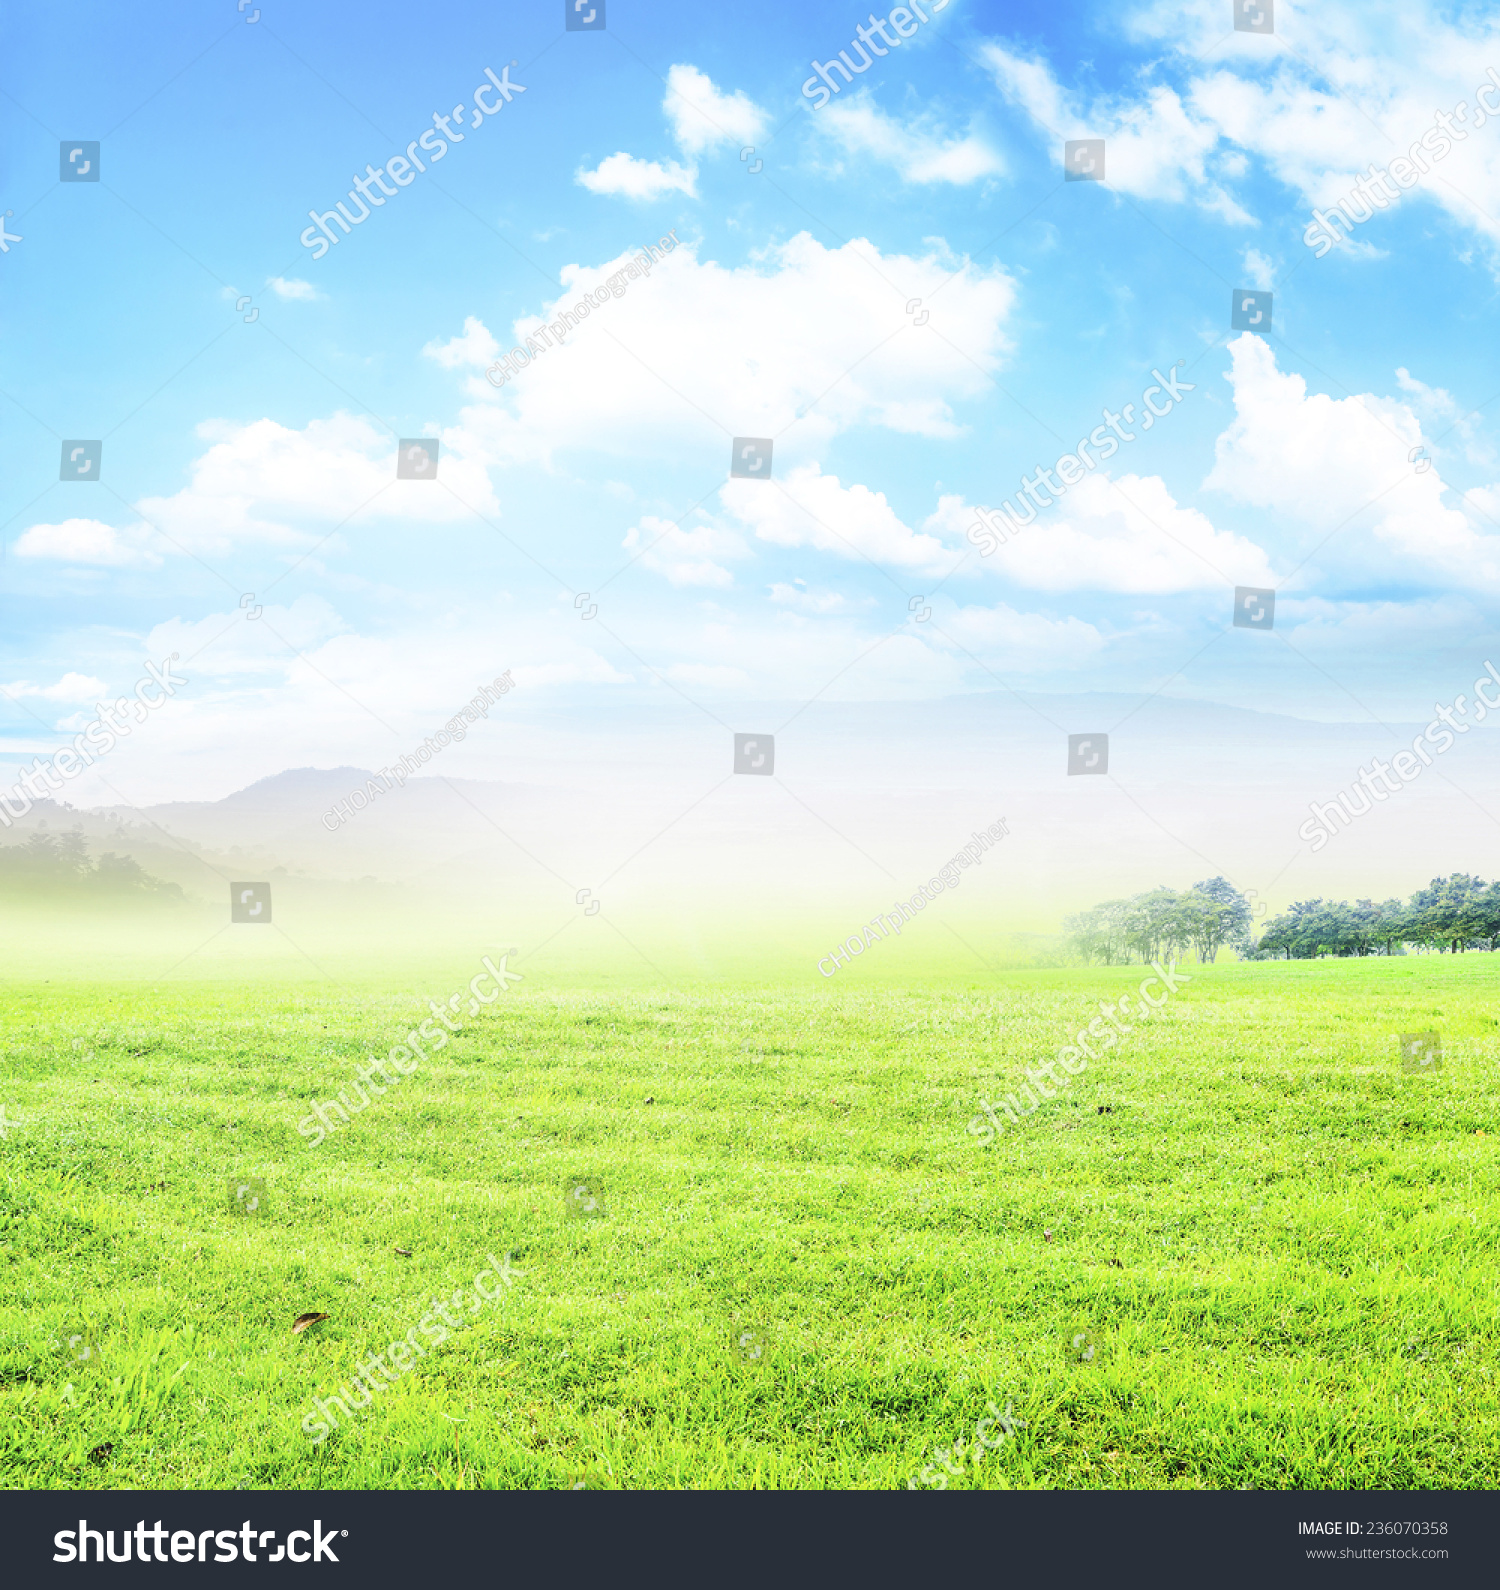 Abstract Natural Backgrounds Green Grass Beauty Stock ...